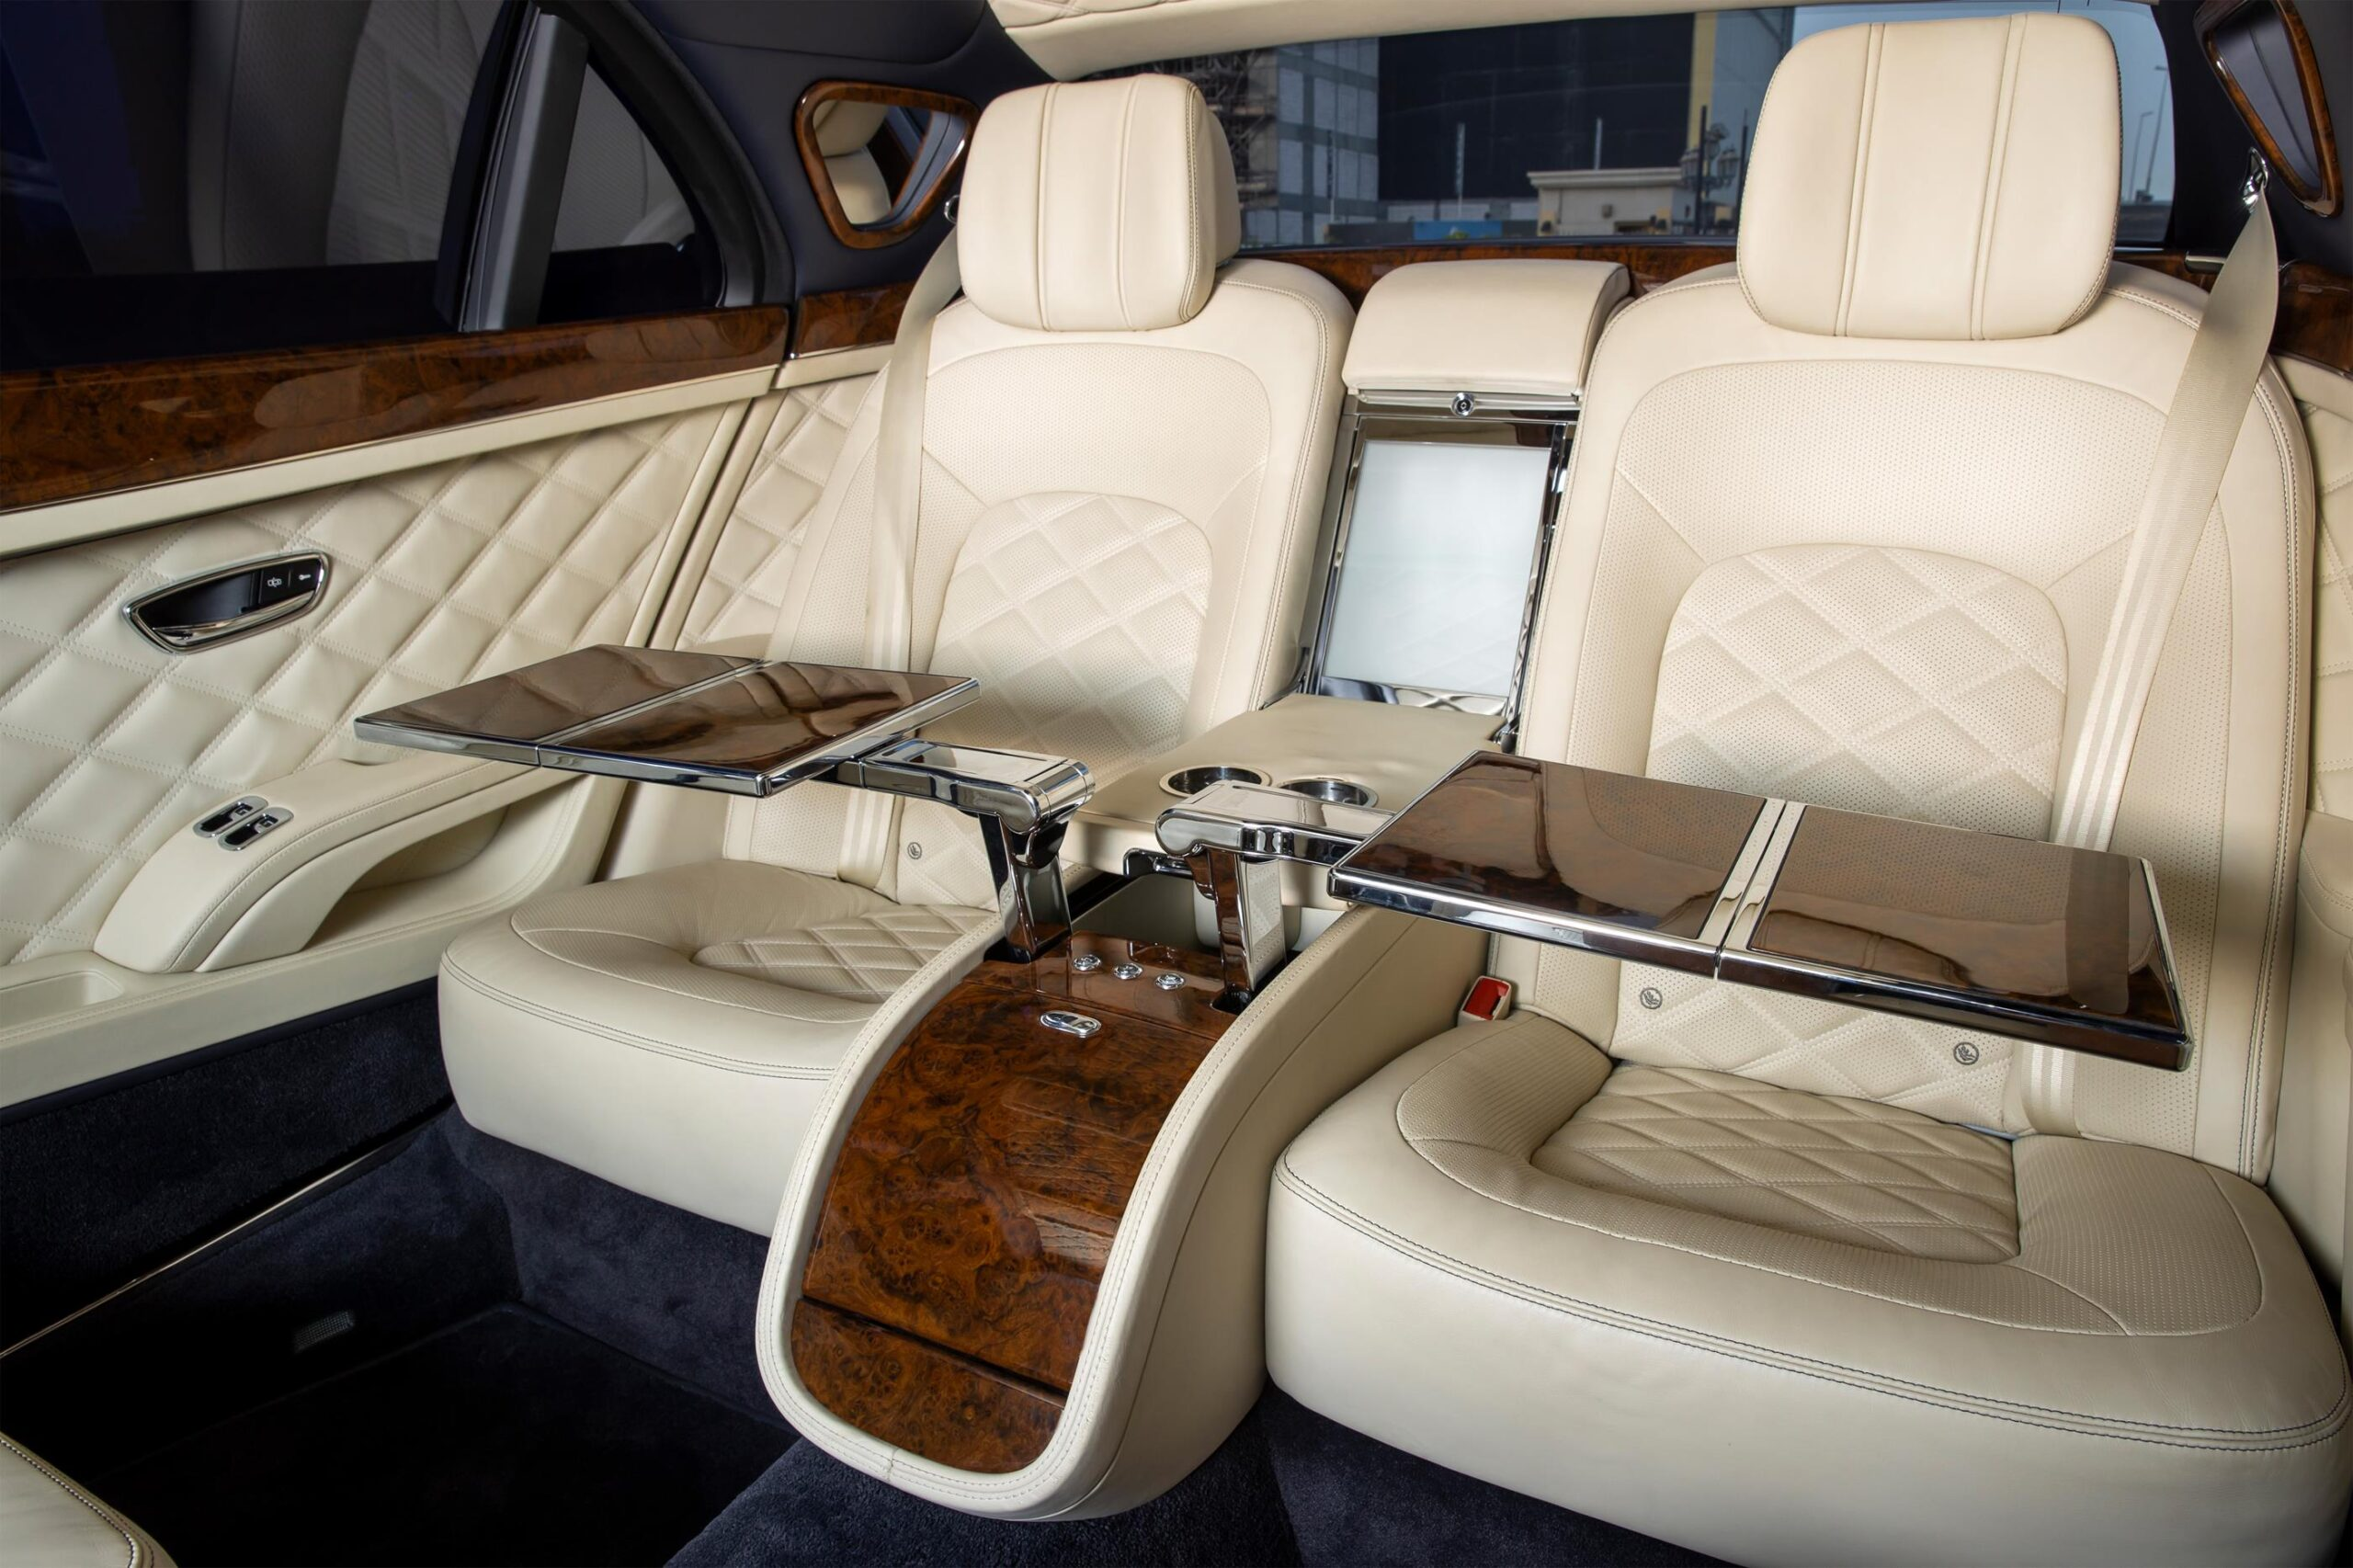 Back seat picnic tables in the Grand Mulsanne limo.